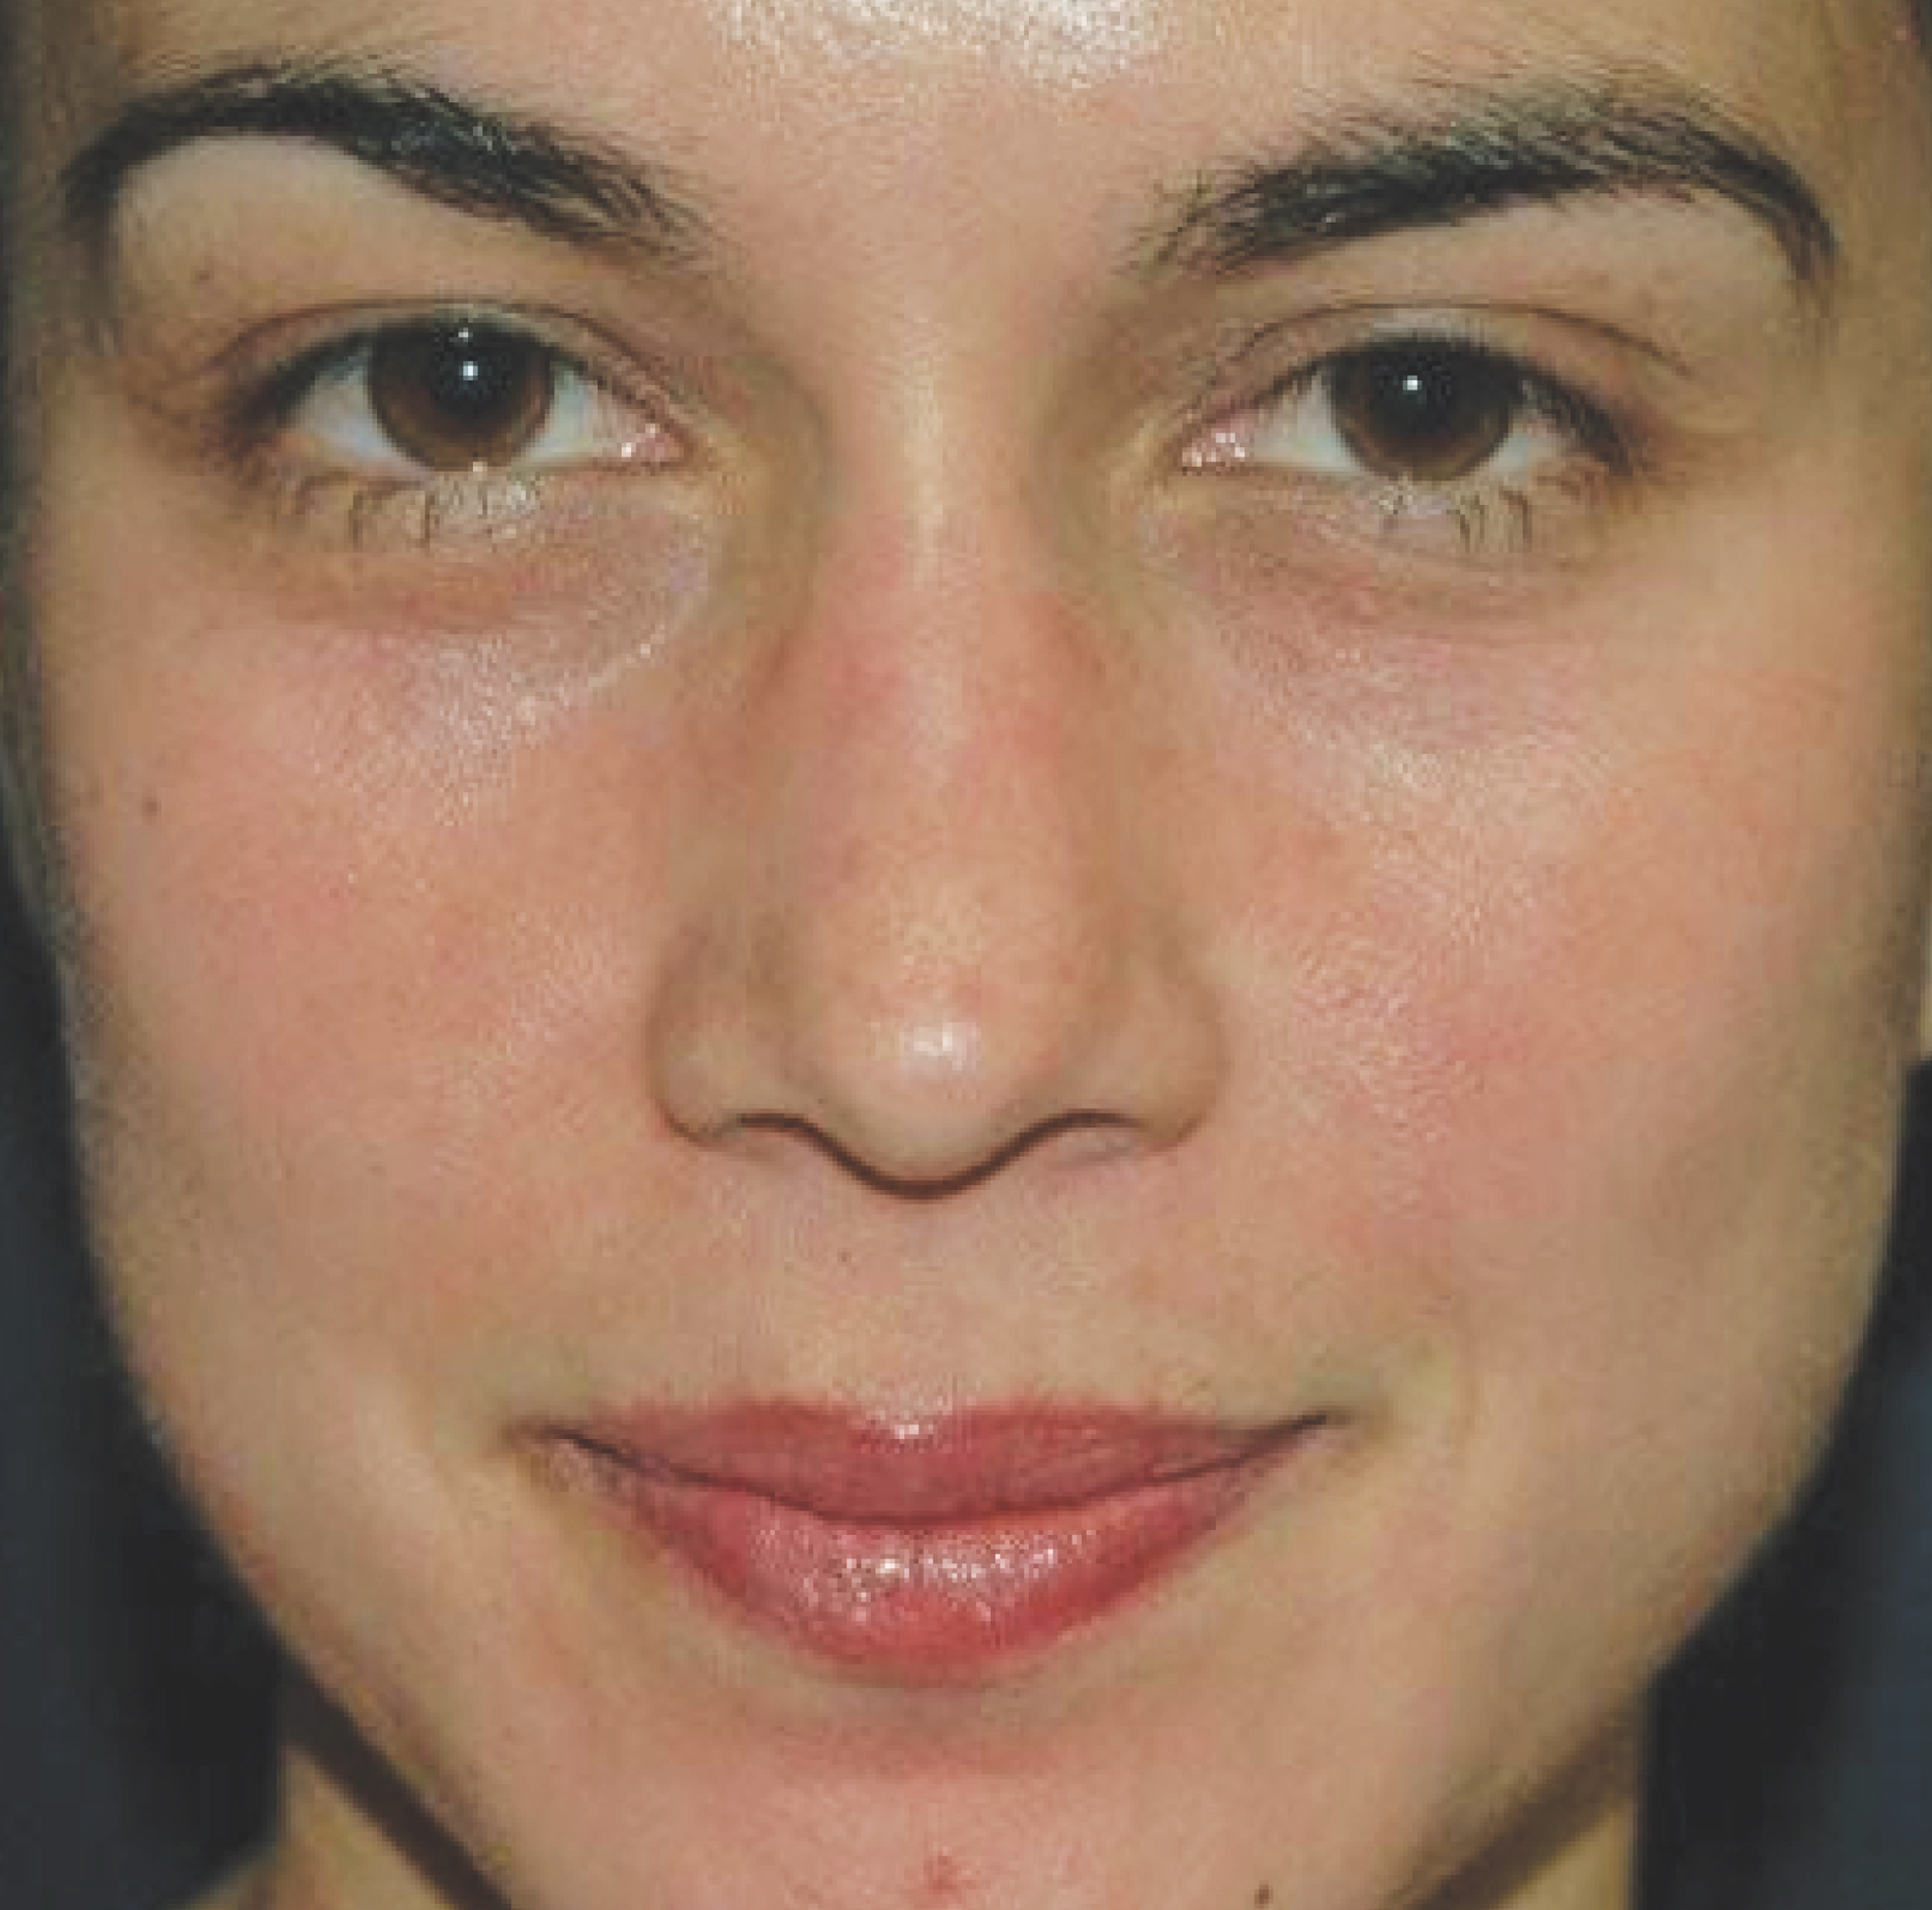 Pigmentation-Volleyball-player copy AFTER.jpg